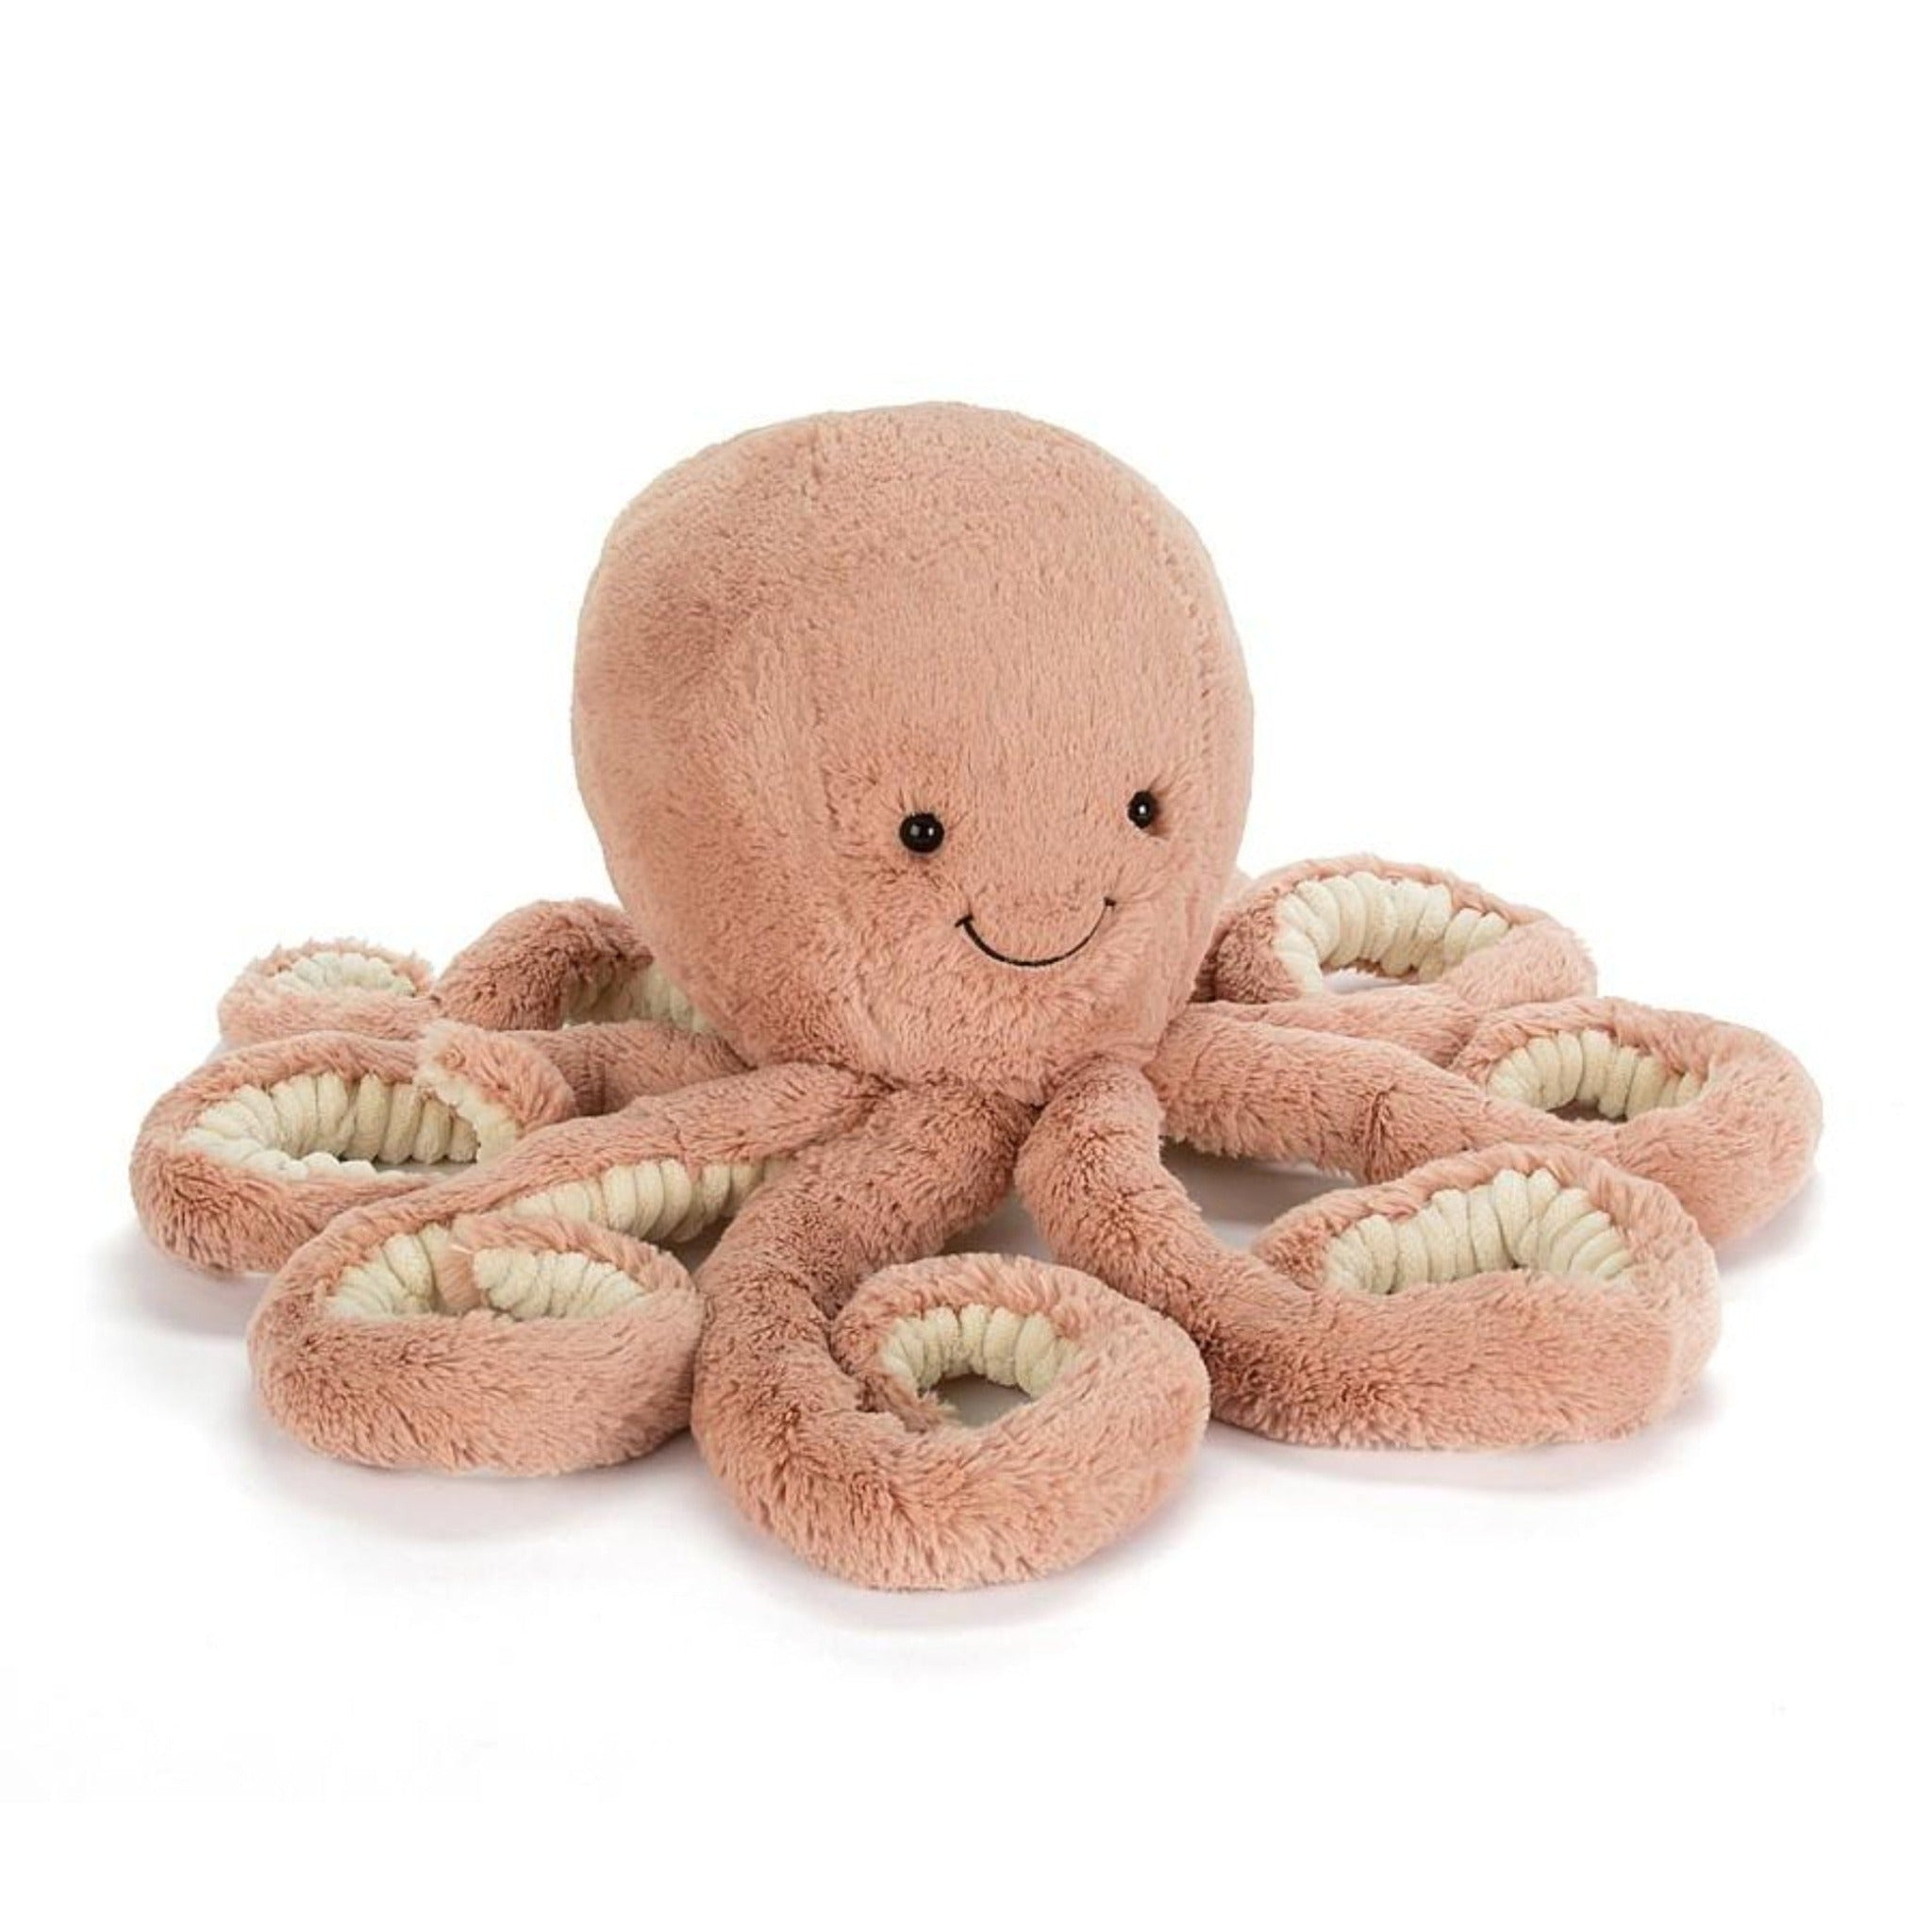 Jellycat plush apricot octopus toy